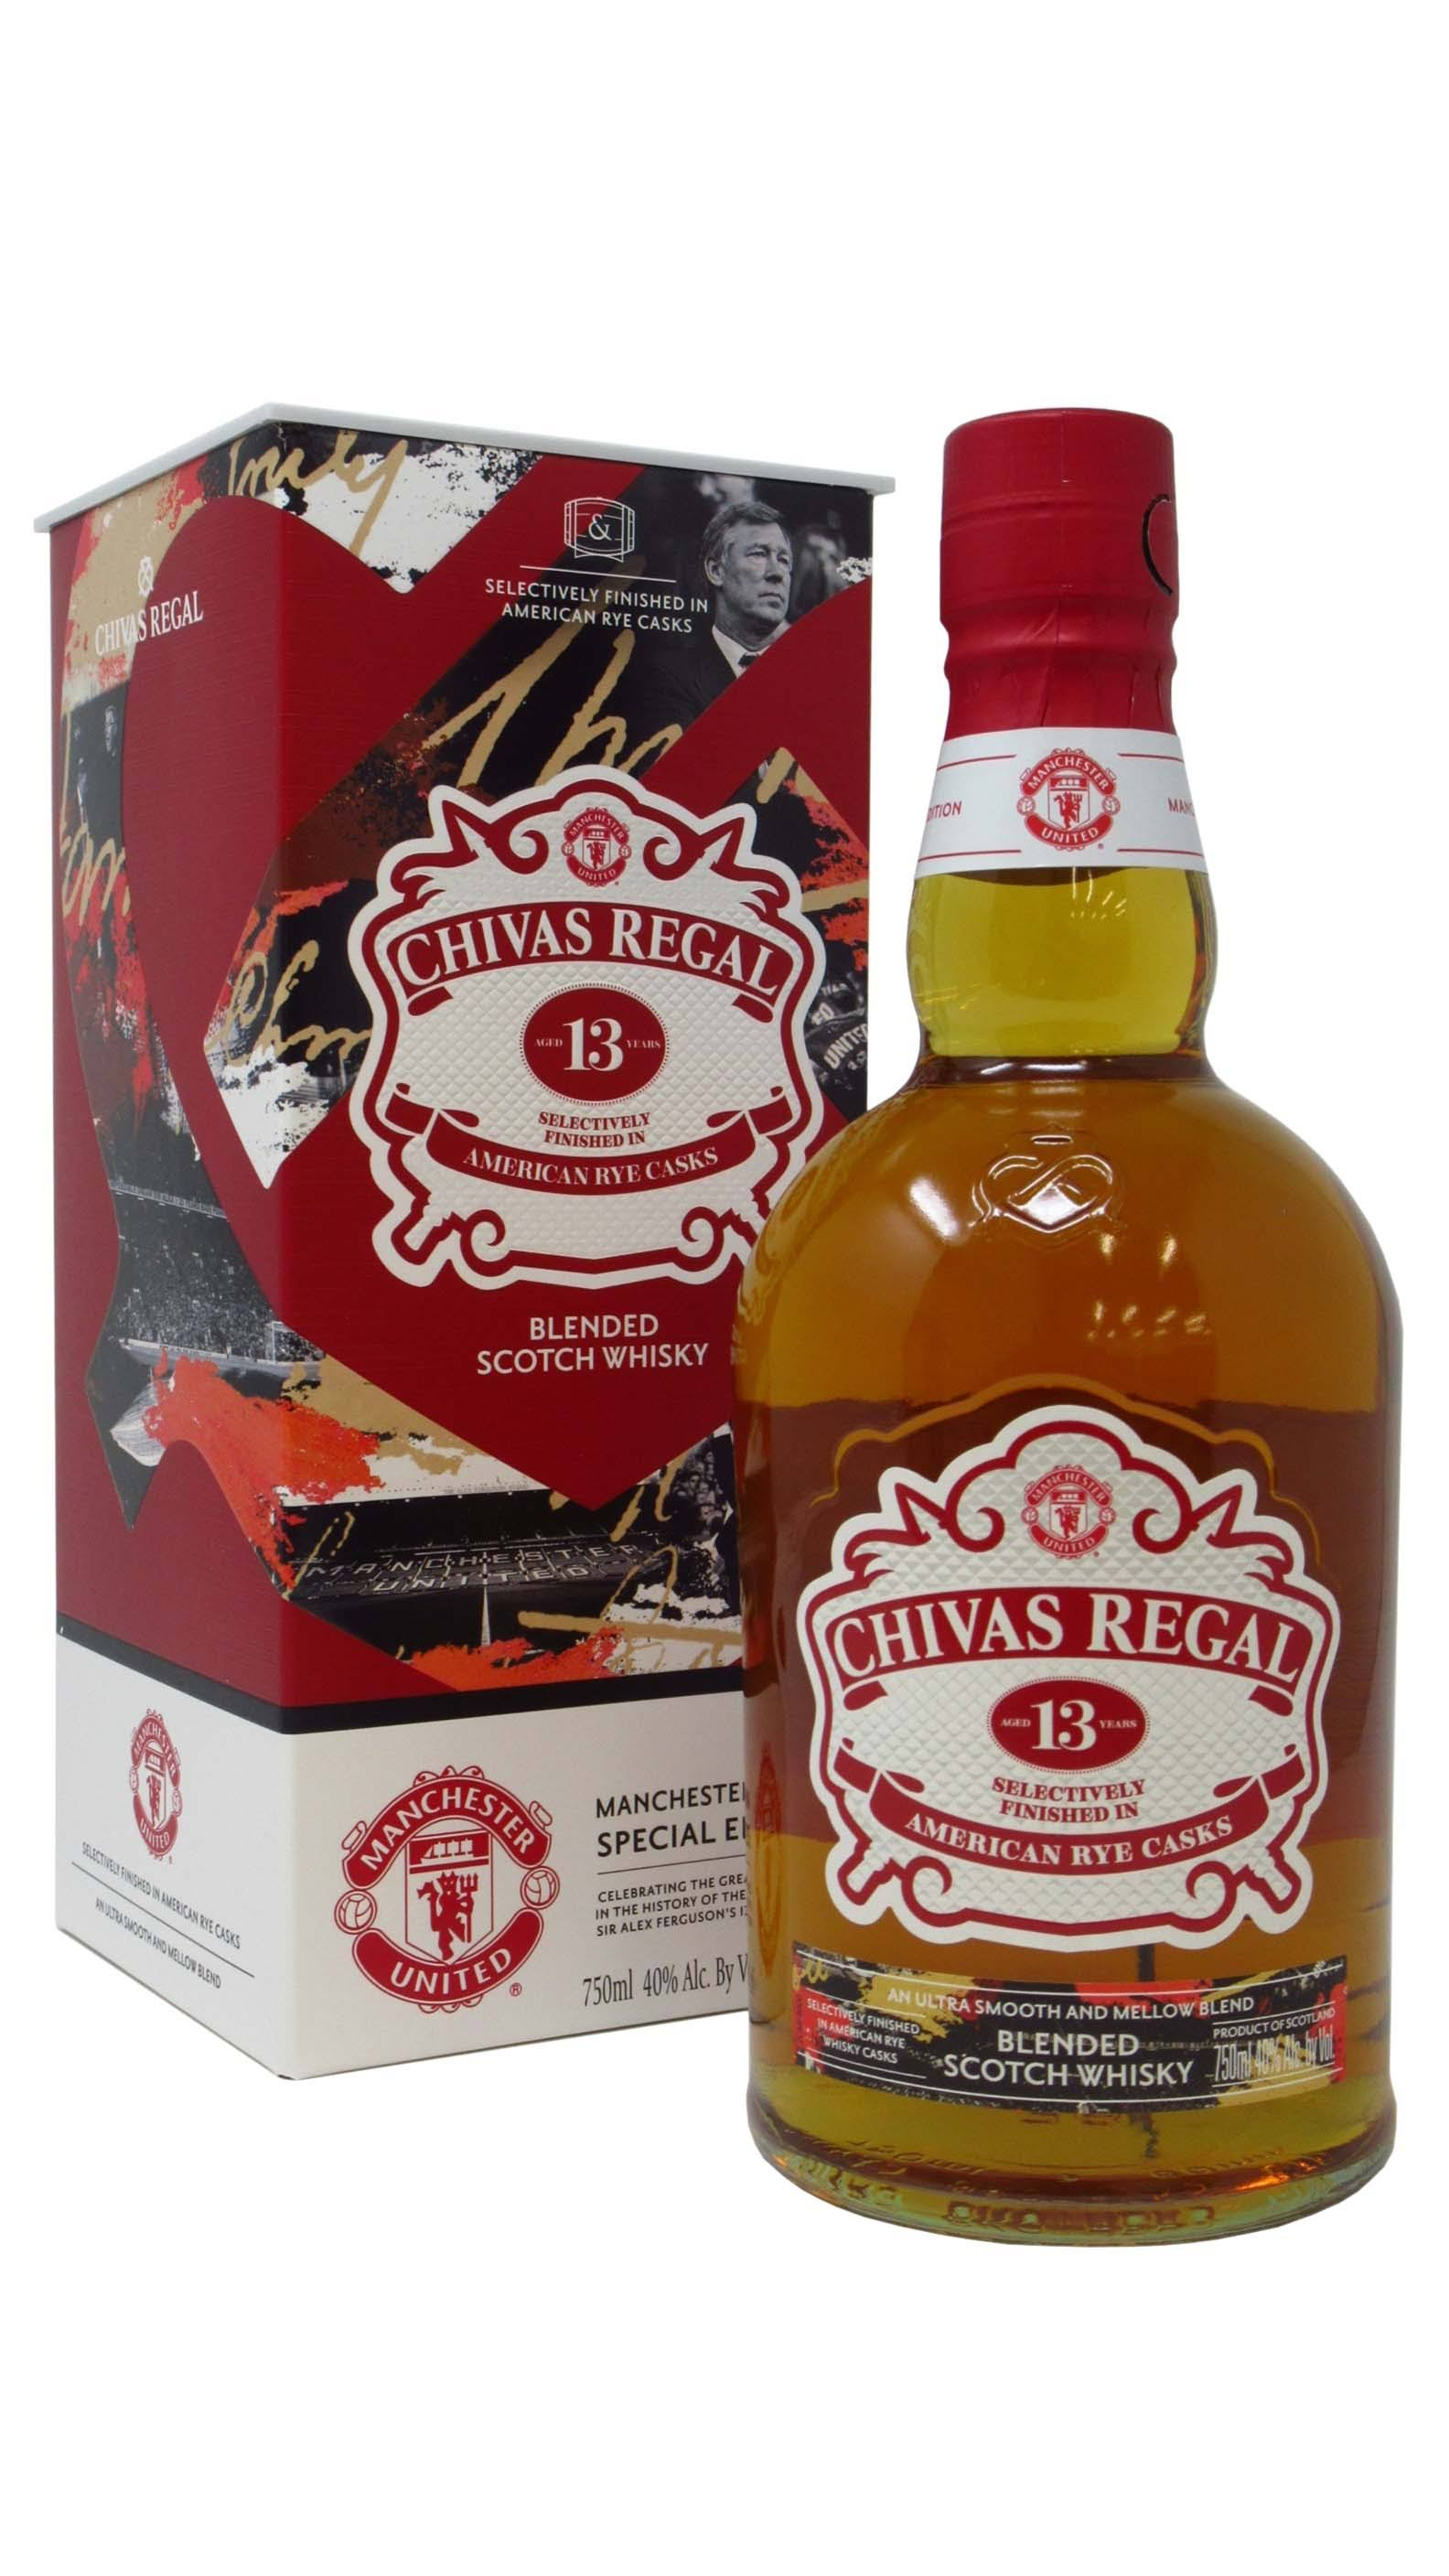 Chivas 13 Yr Aged in American Rye Barre 750ml | winefolder